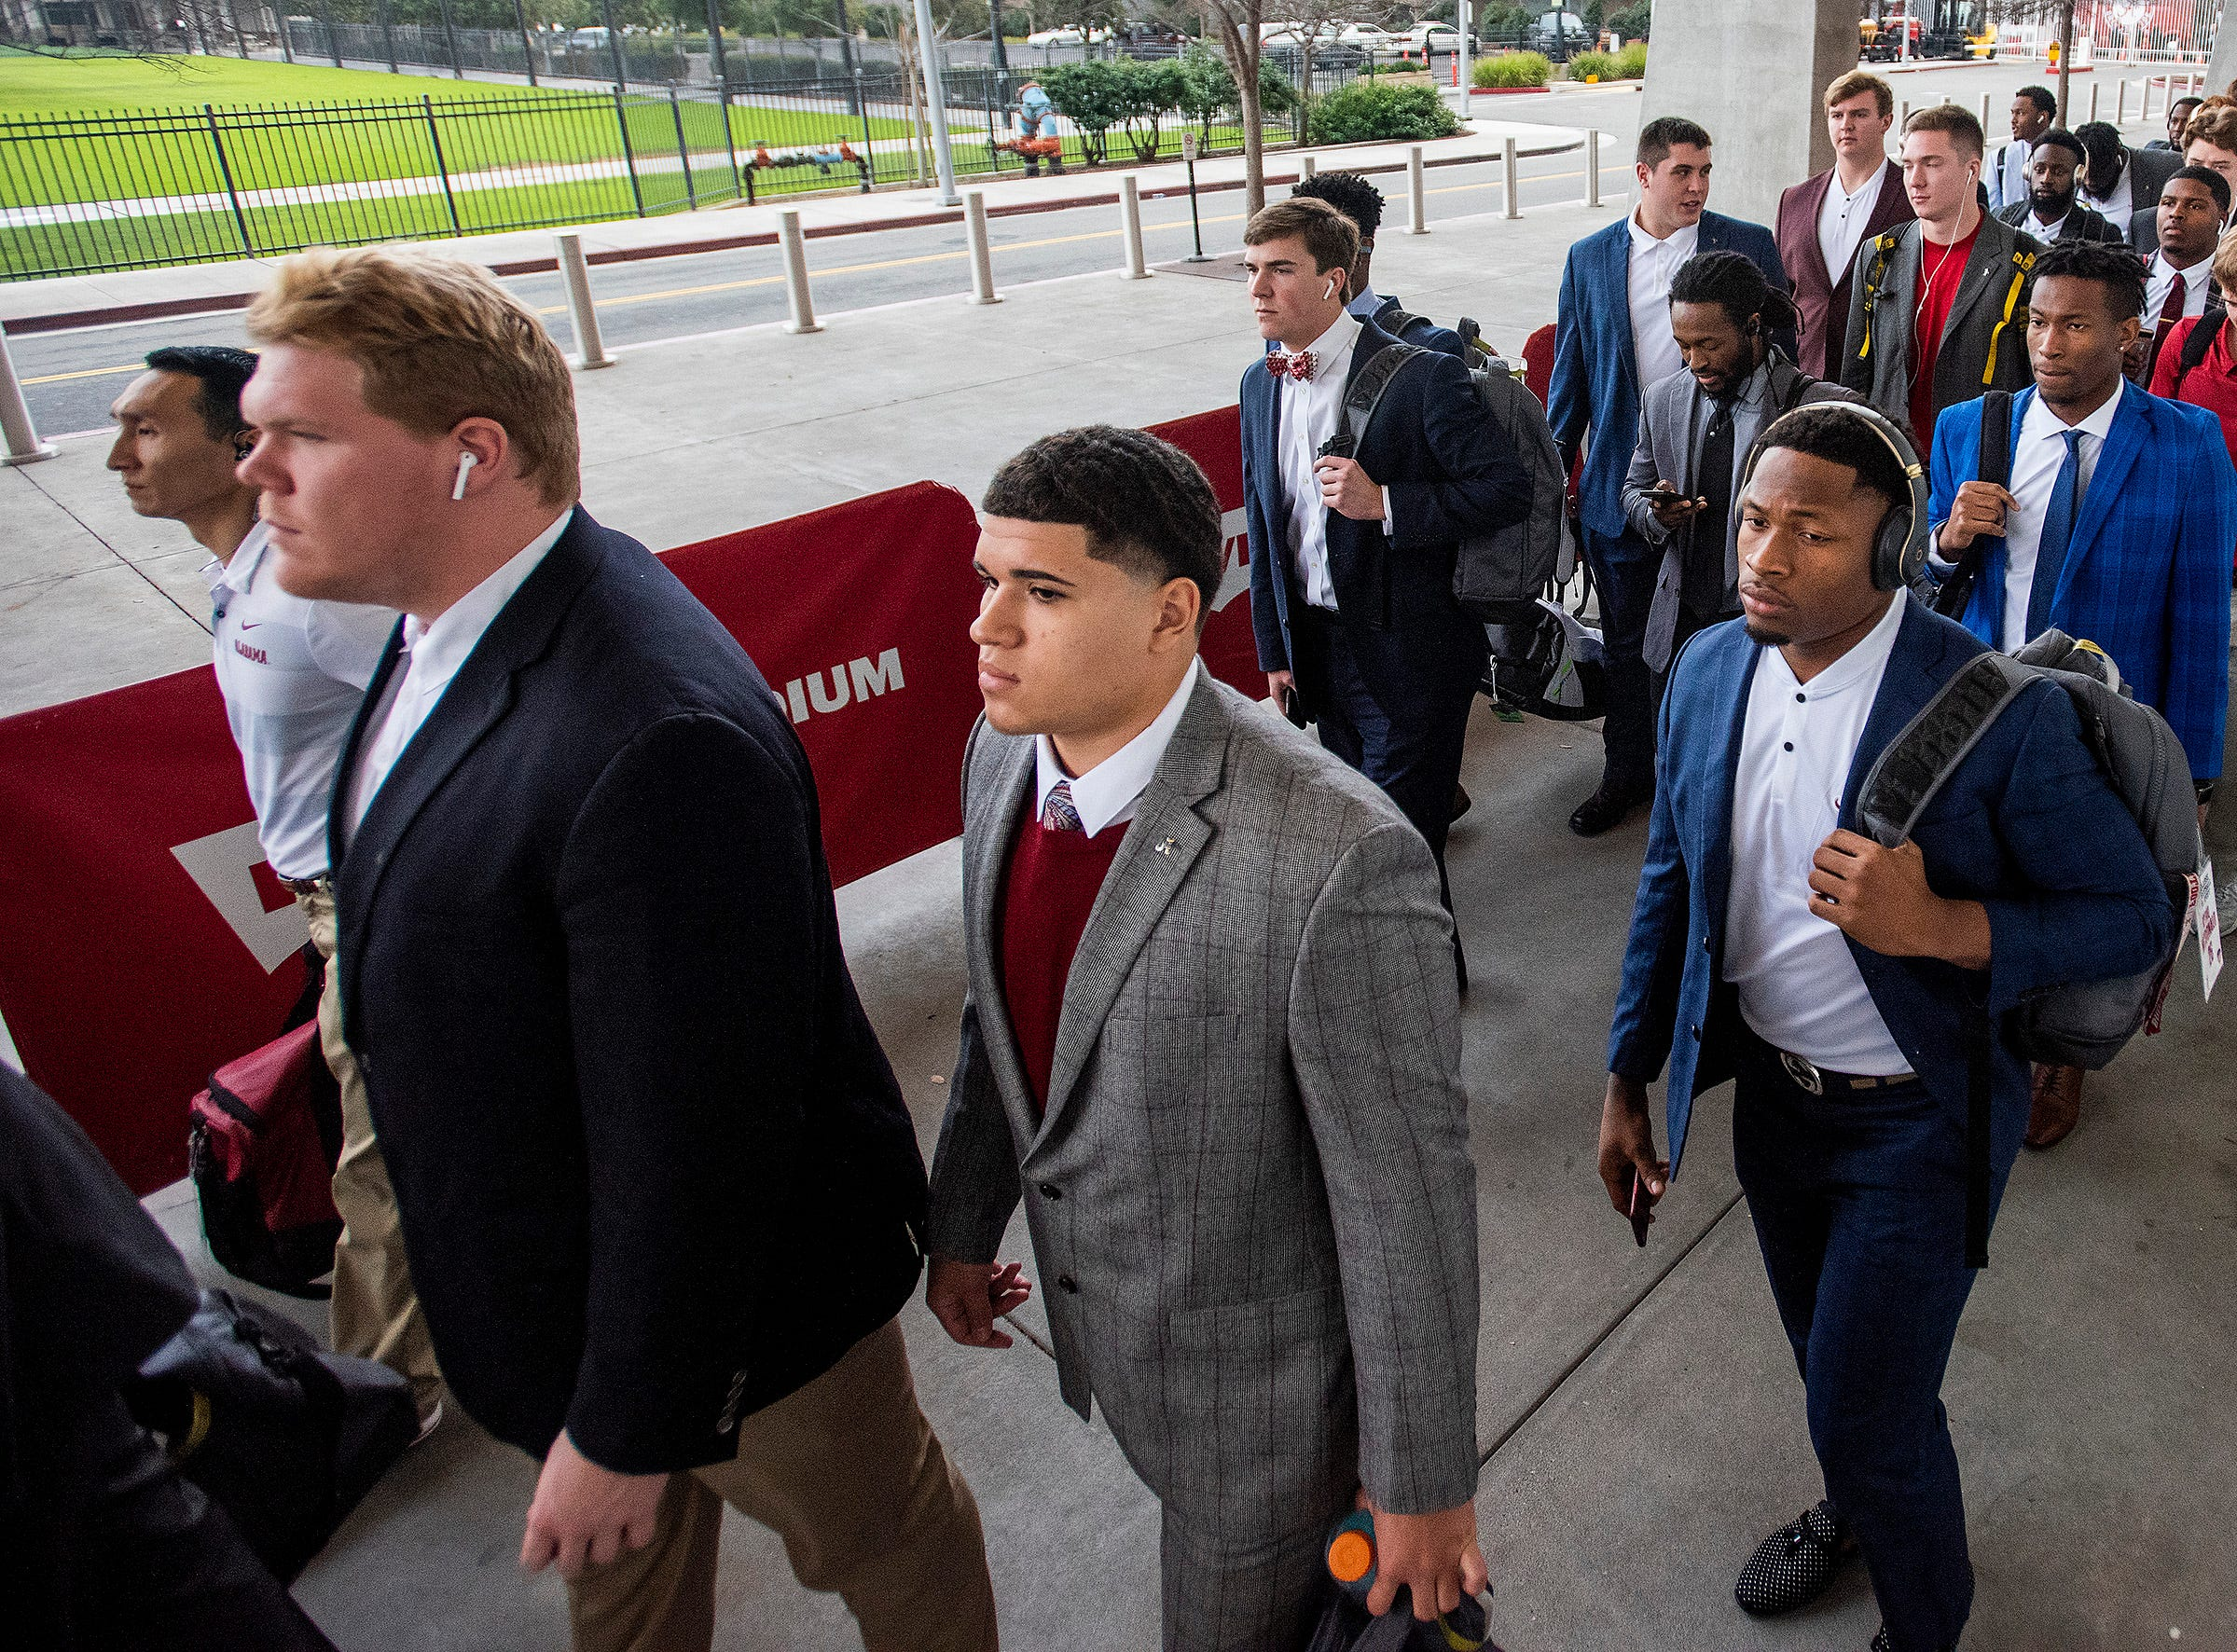 Alabama arrives for the College Football Playoff National Championship game at Levi's Stadium in Santa Clara, Ca., on Monday January 7, 2019.